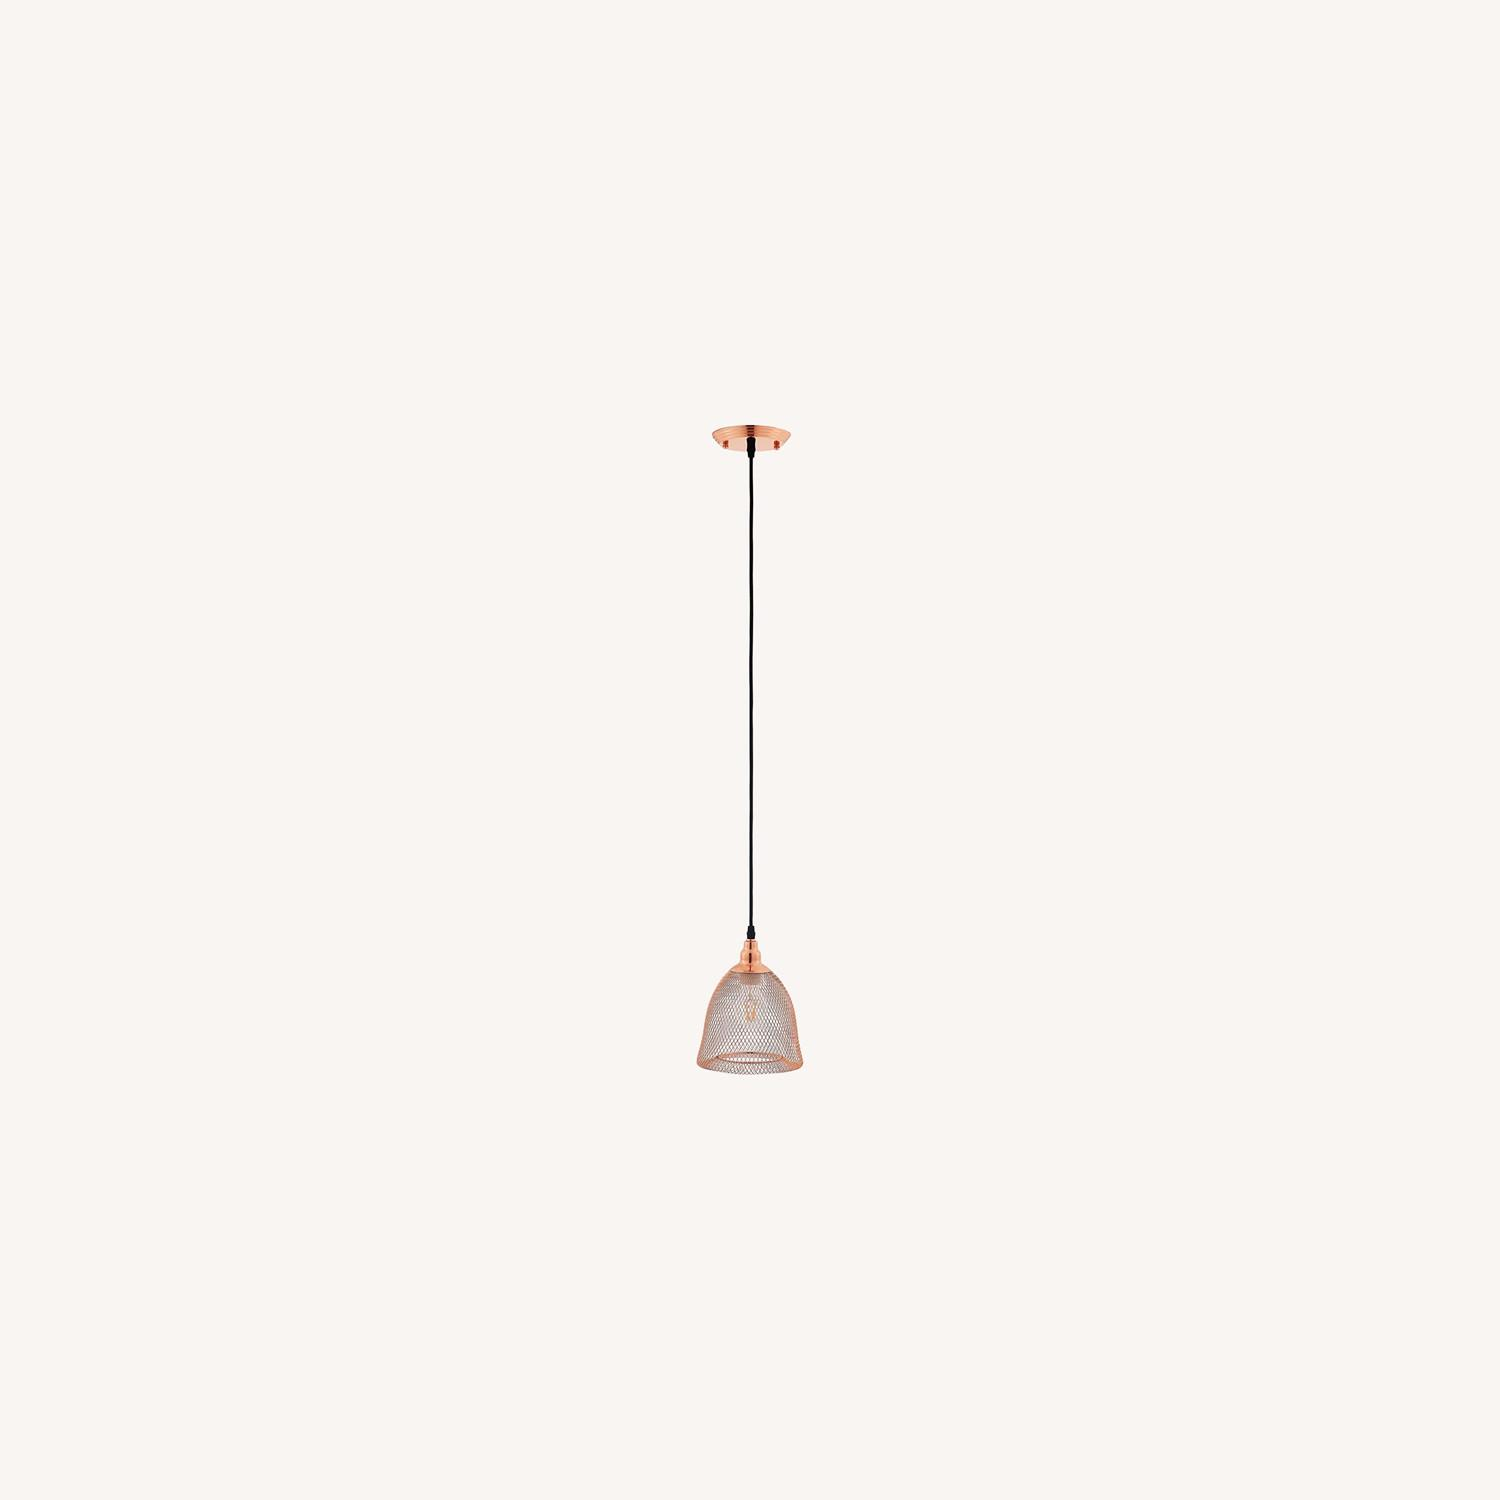 Pendant Light In Bell-Shaped Rose Gold Finish - image-4